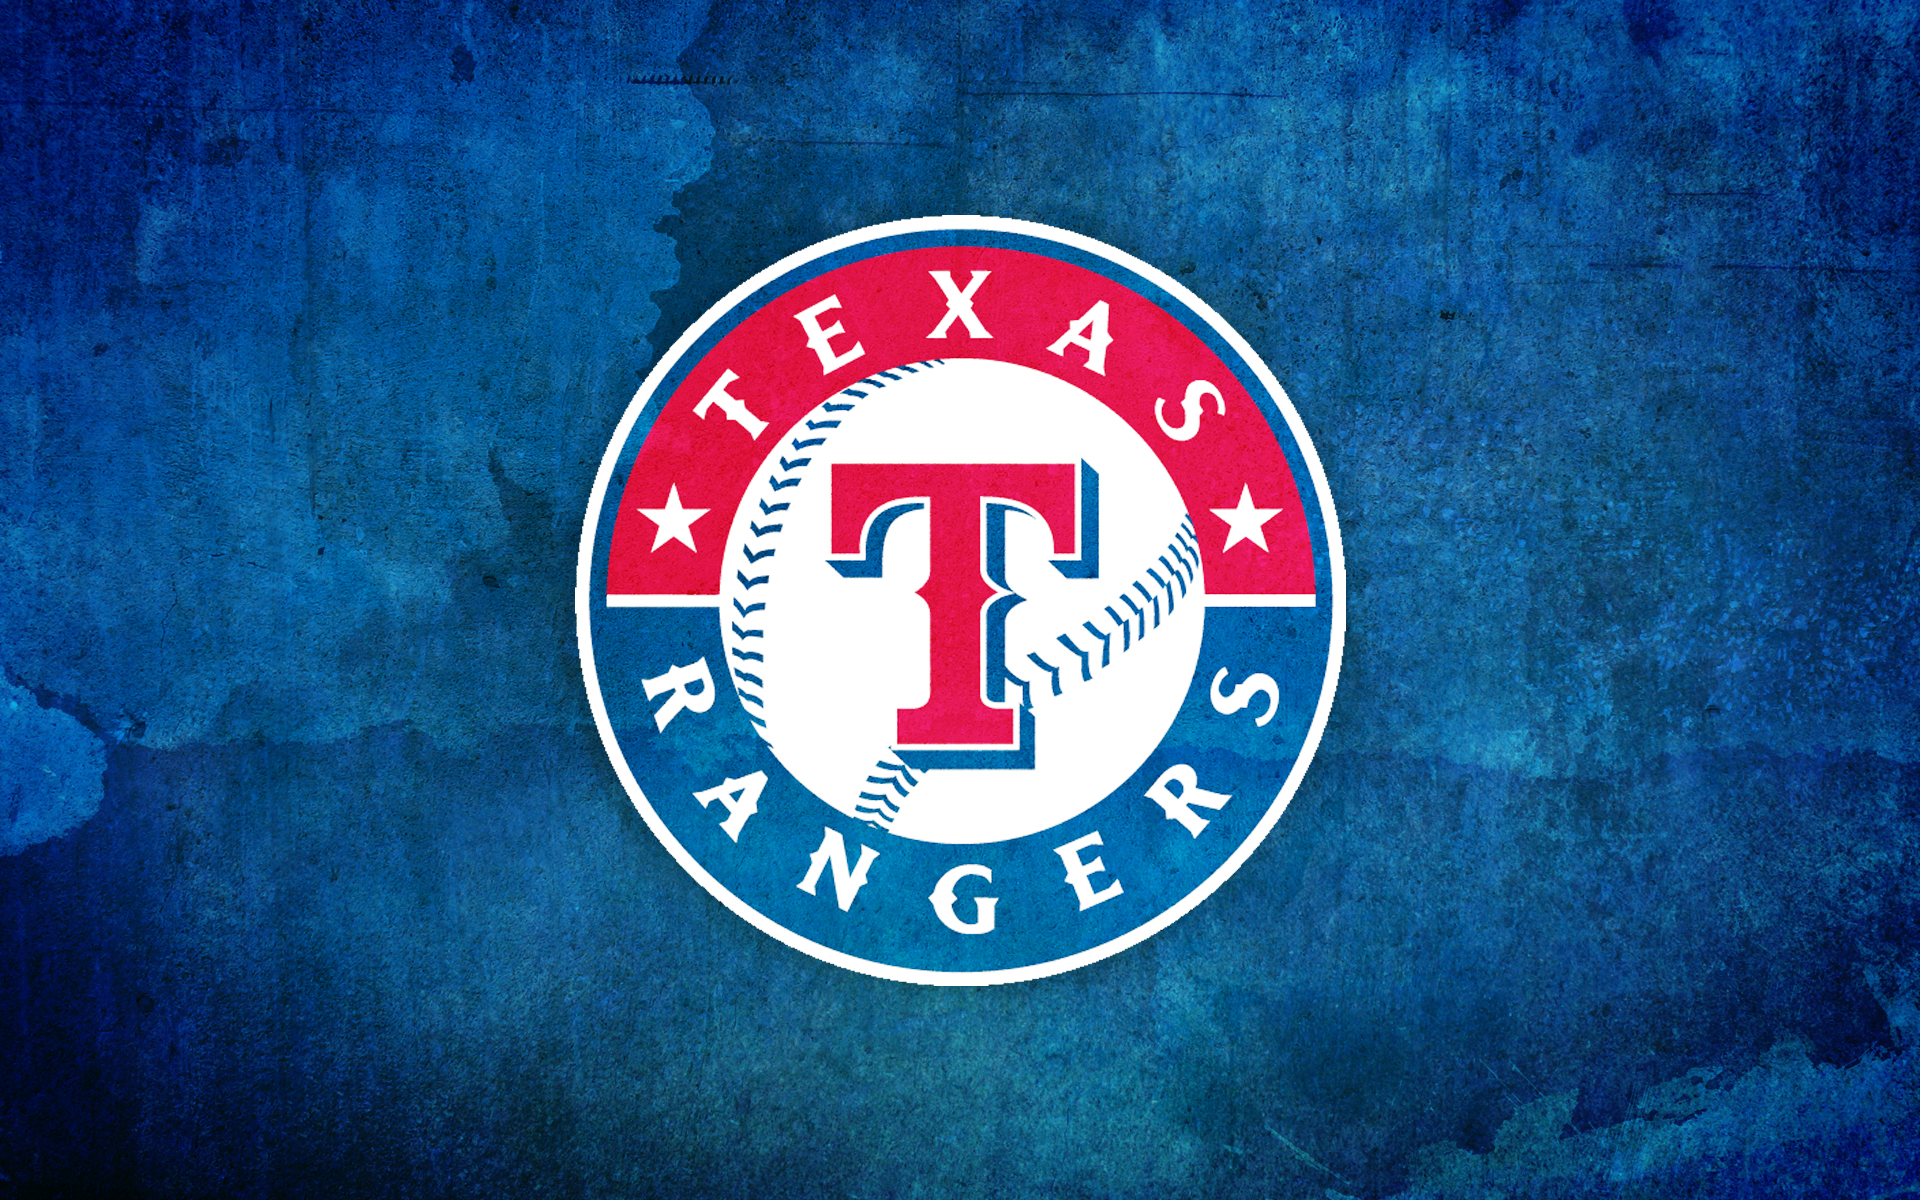 Texas Rangers Baseball Wallpaper